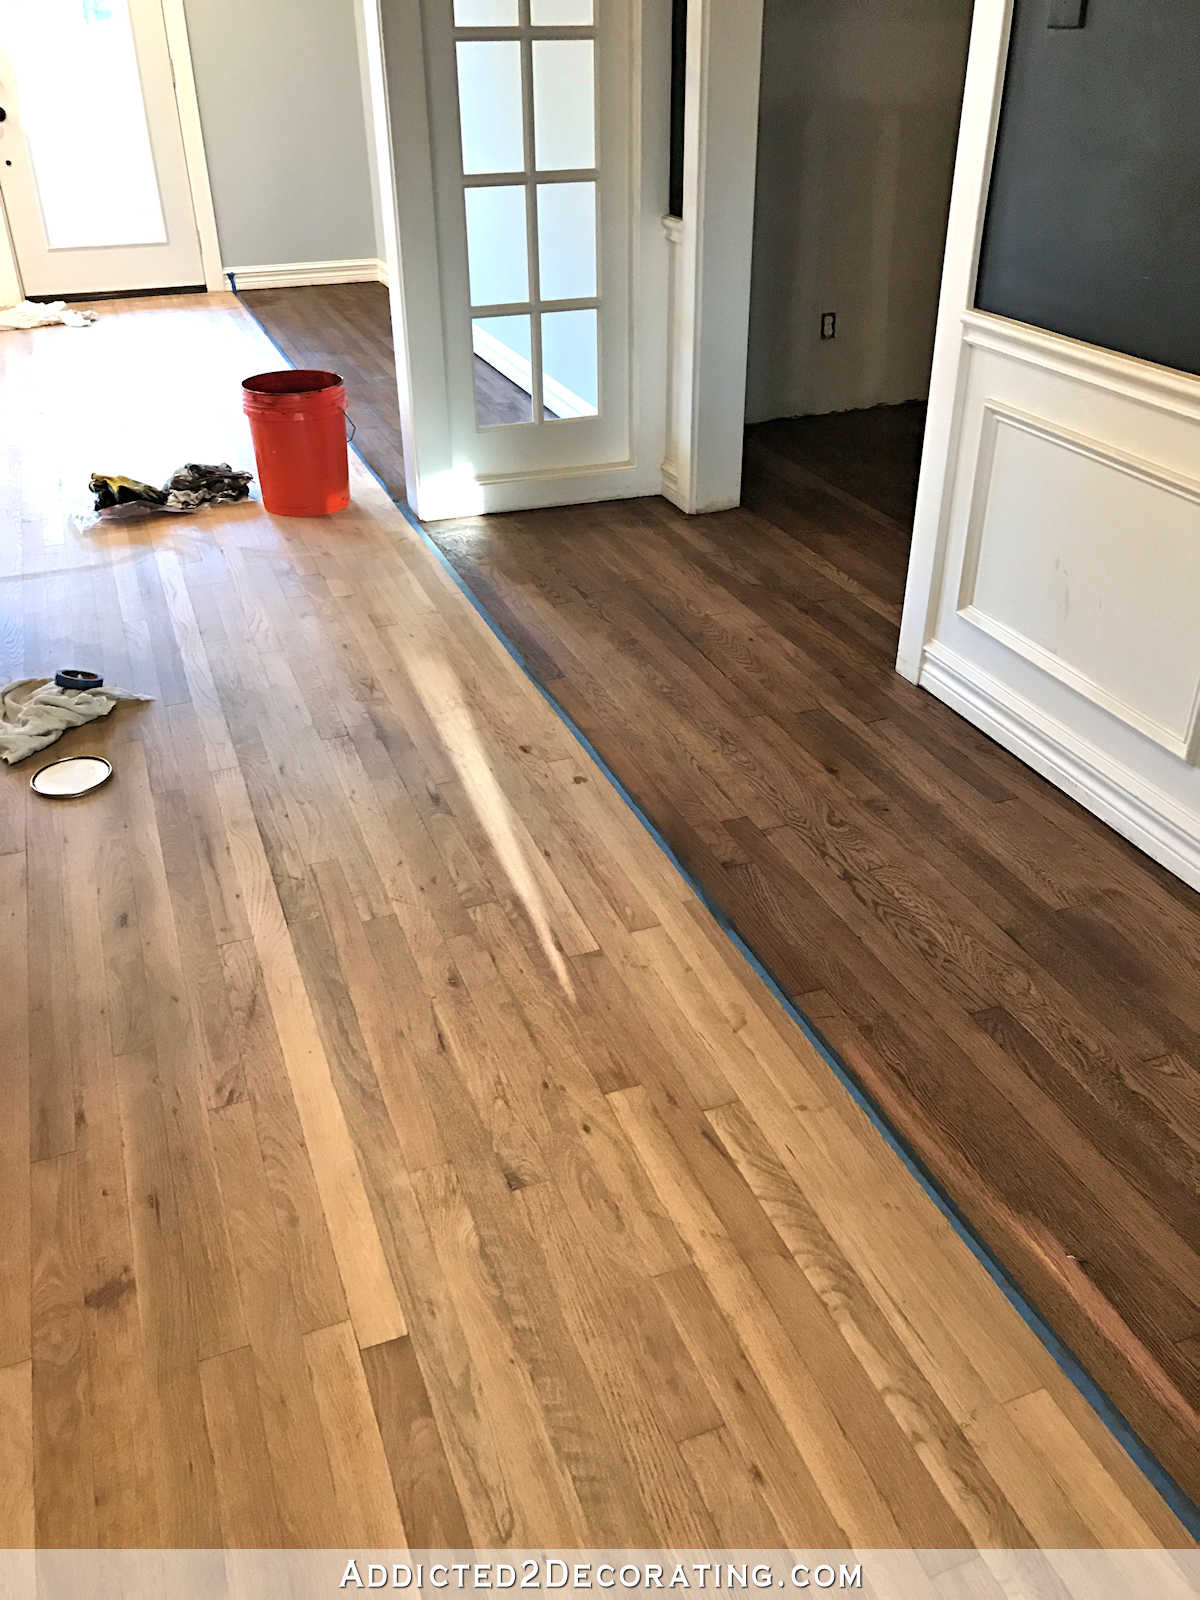 change hardwood floor stain color of adventures in staining my red oak hardwood floors products process regarding staining red oak hardwood floors 6 stain on partial floor in entryway and music room